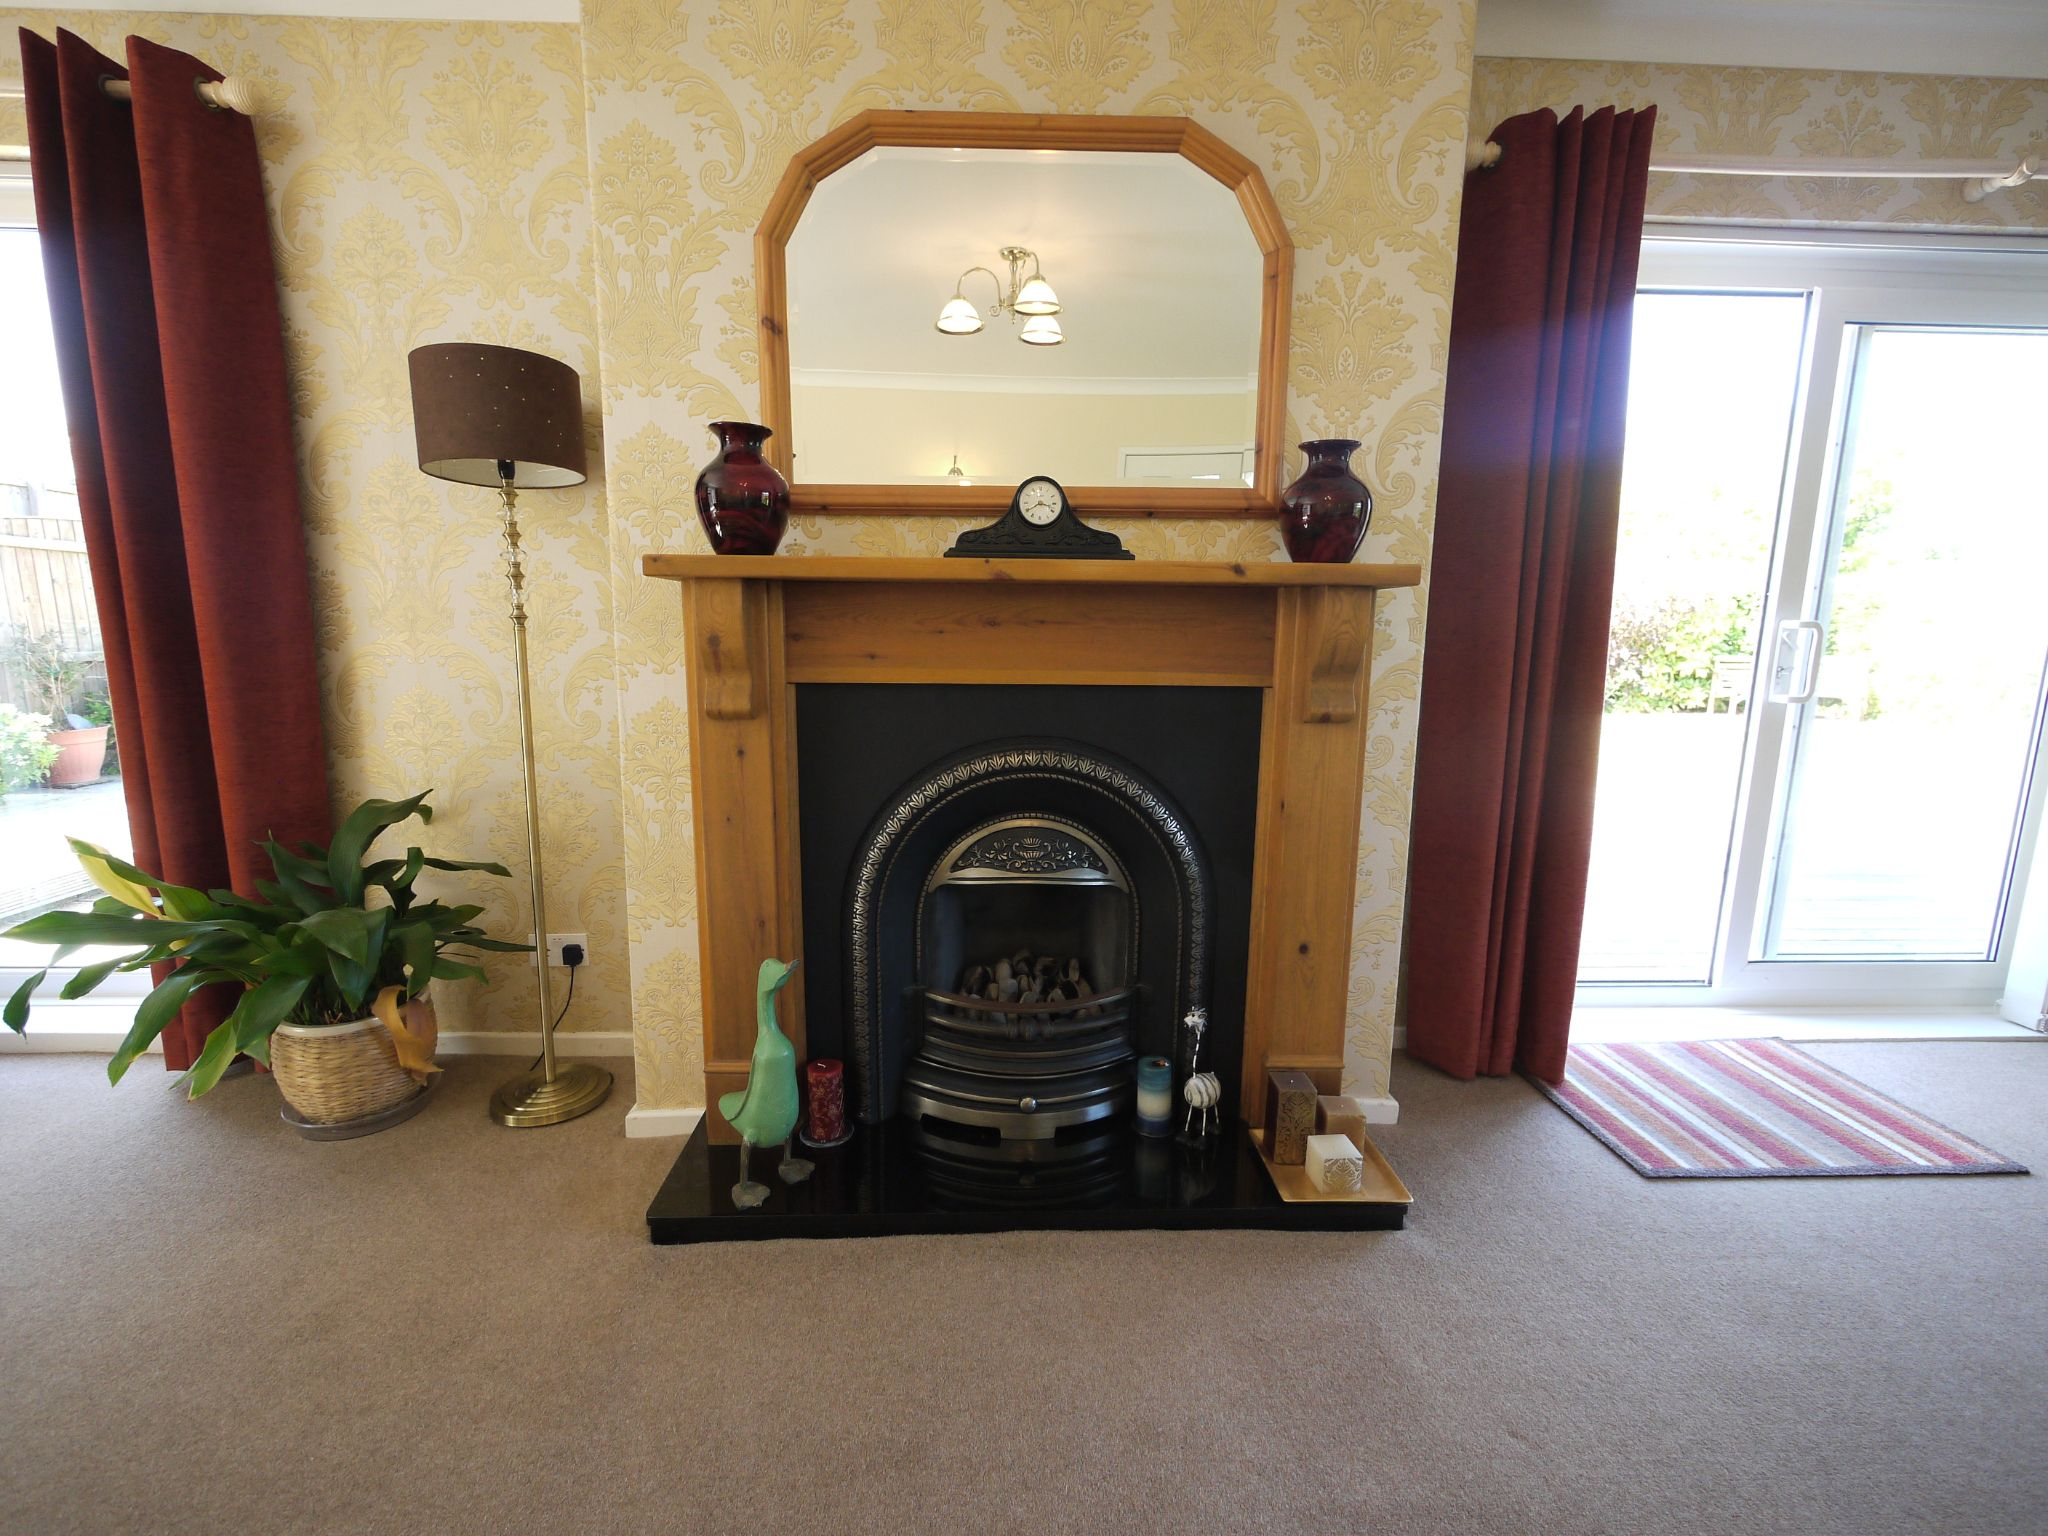 5 bedroom detached house SSTC in Brighouse - Lounge fireplace.